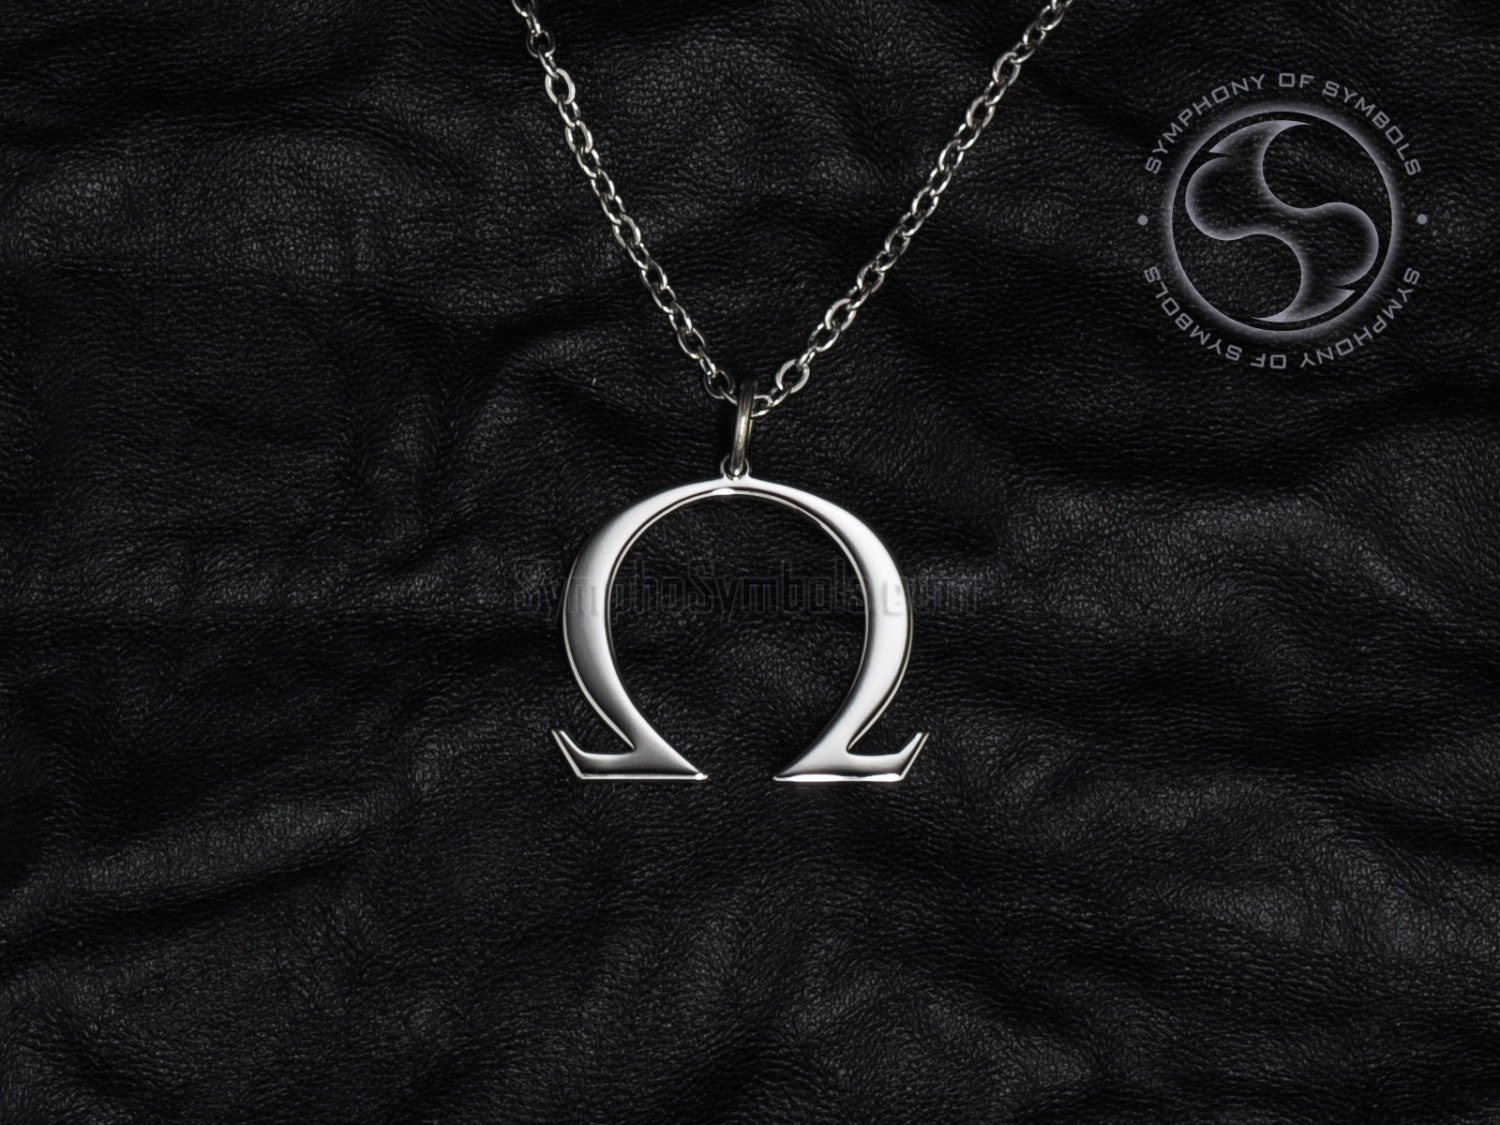 Omega pendant greek symbol stainless steel jewelry capital zoom biocorpaavc